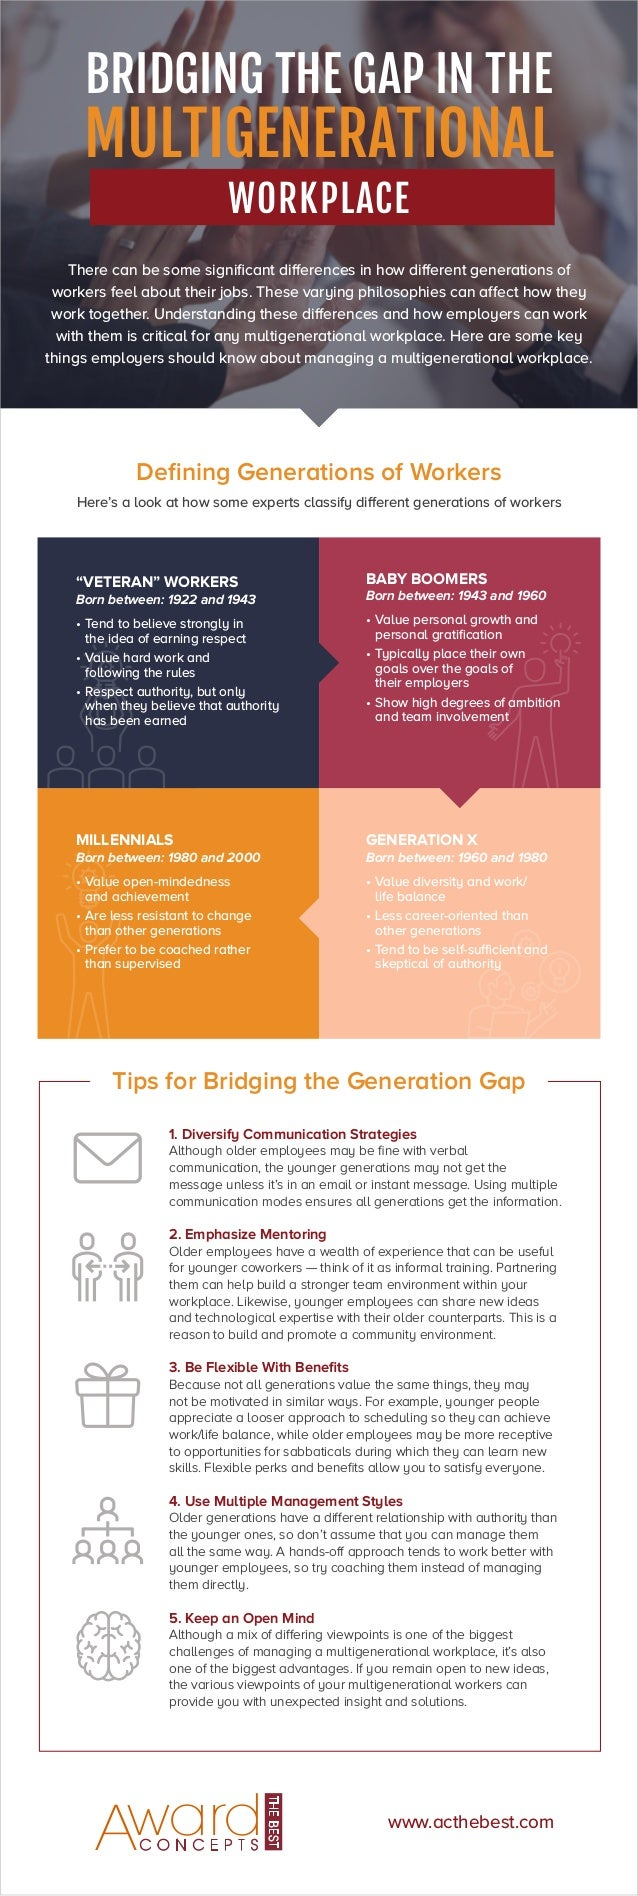 BRIDGING THE GAP IN THE MULTIGENERATIONAL WORKPLACE There can be some significant differences in how different generations...